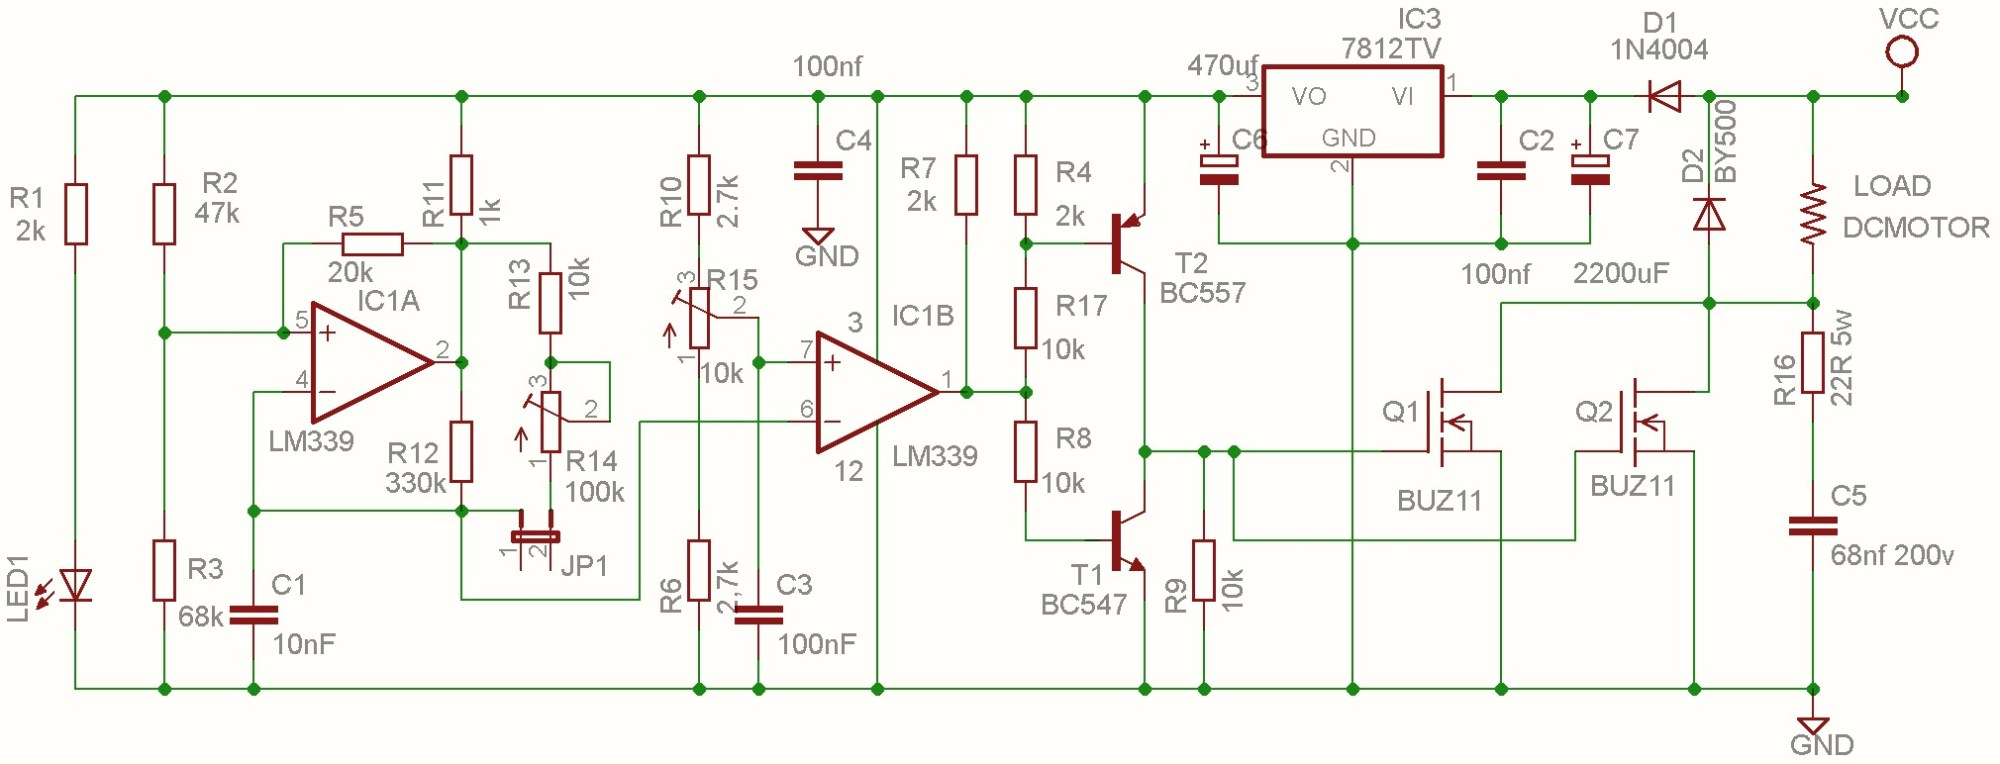 hight resolution of dc motor speed controller pwm 0 100 overcurrent protection second you treadmill motor  [ 2000 x 764 Pixel ]